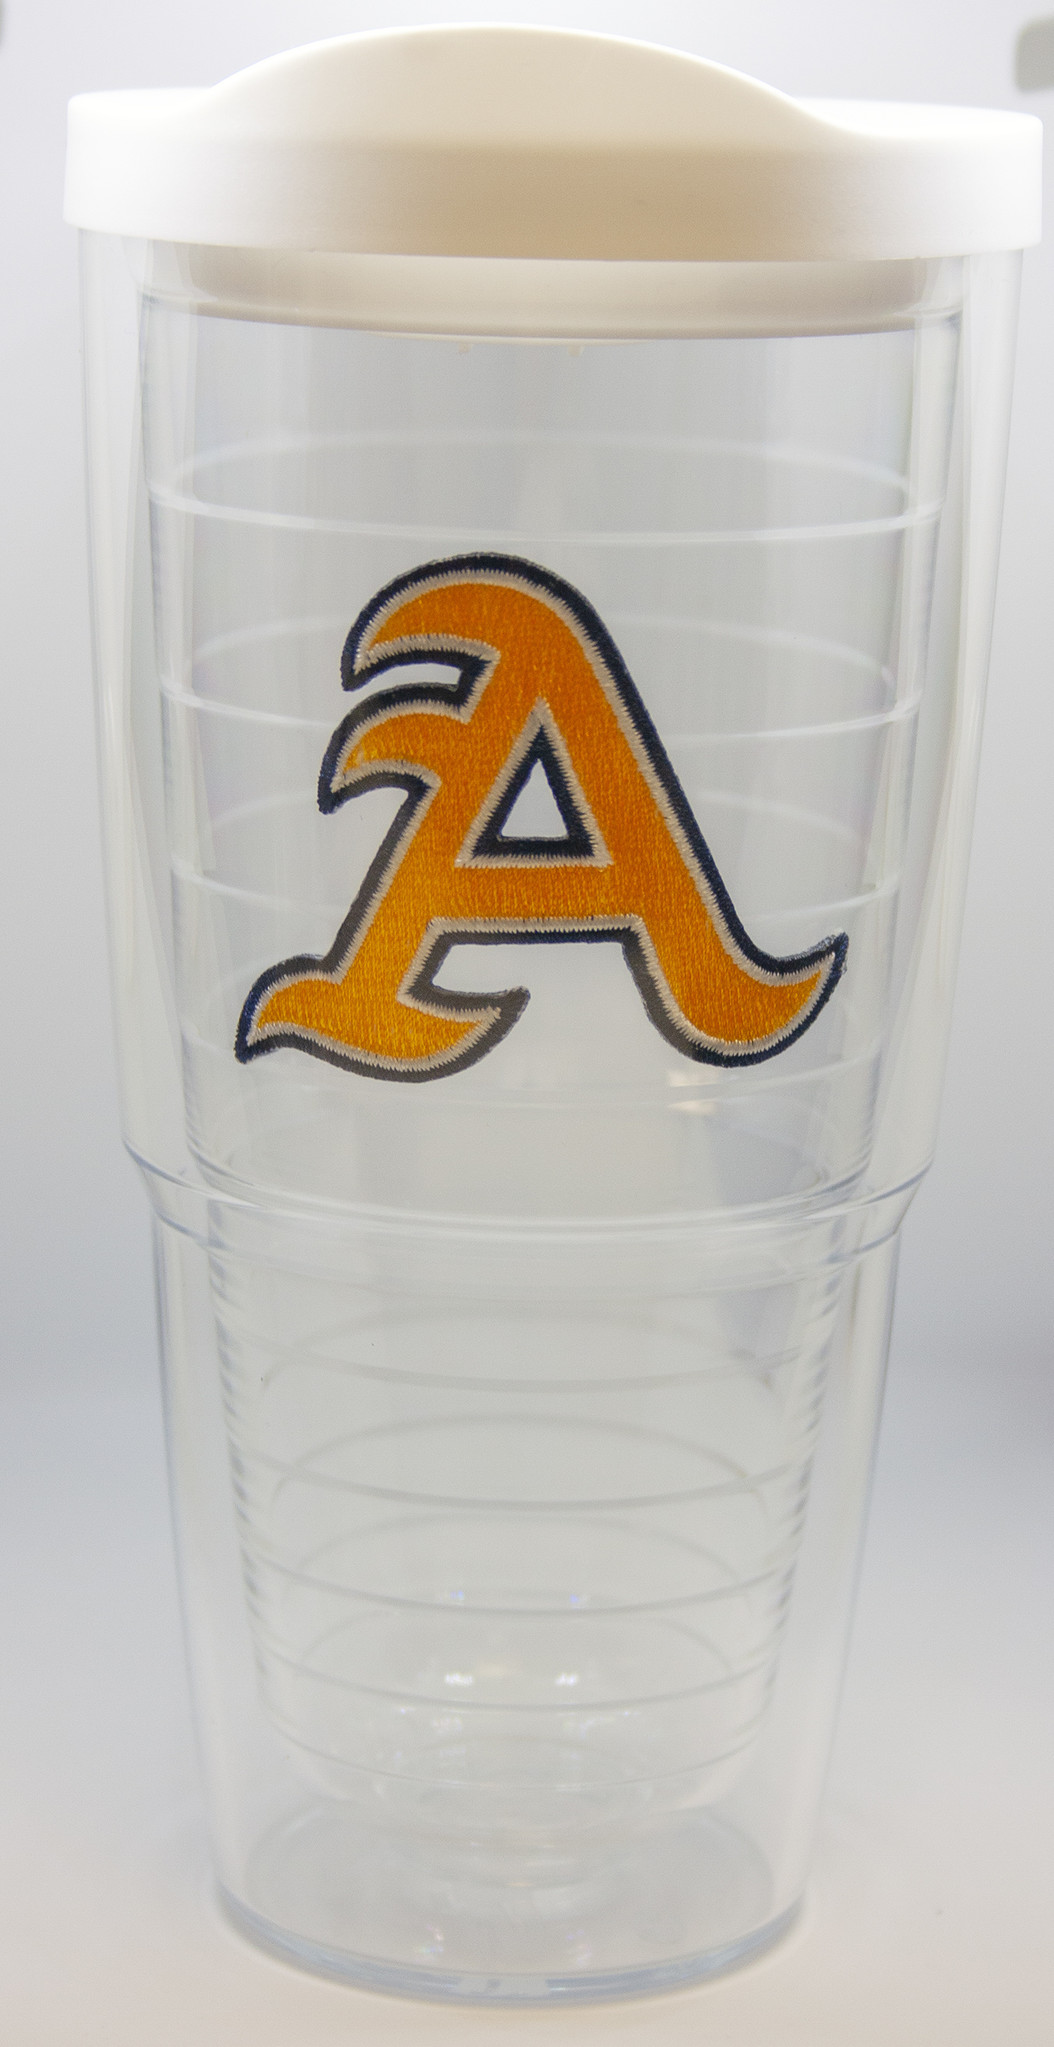 Tervis Tervis Clear Tumbler Cups